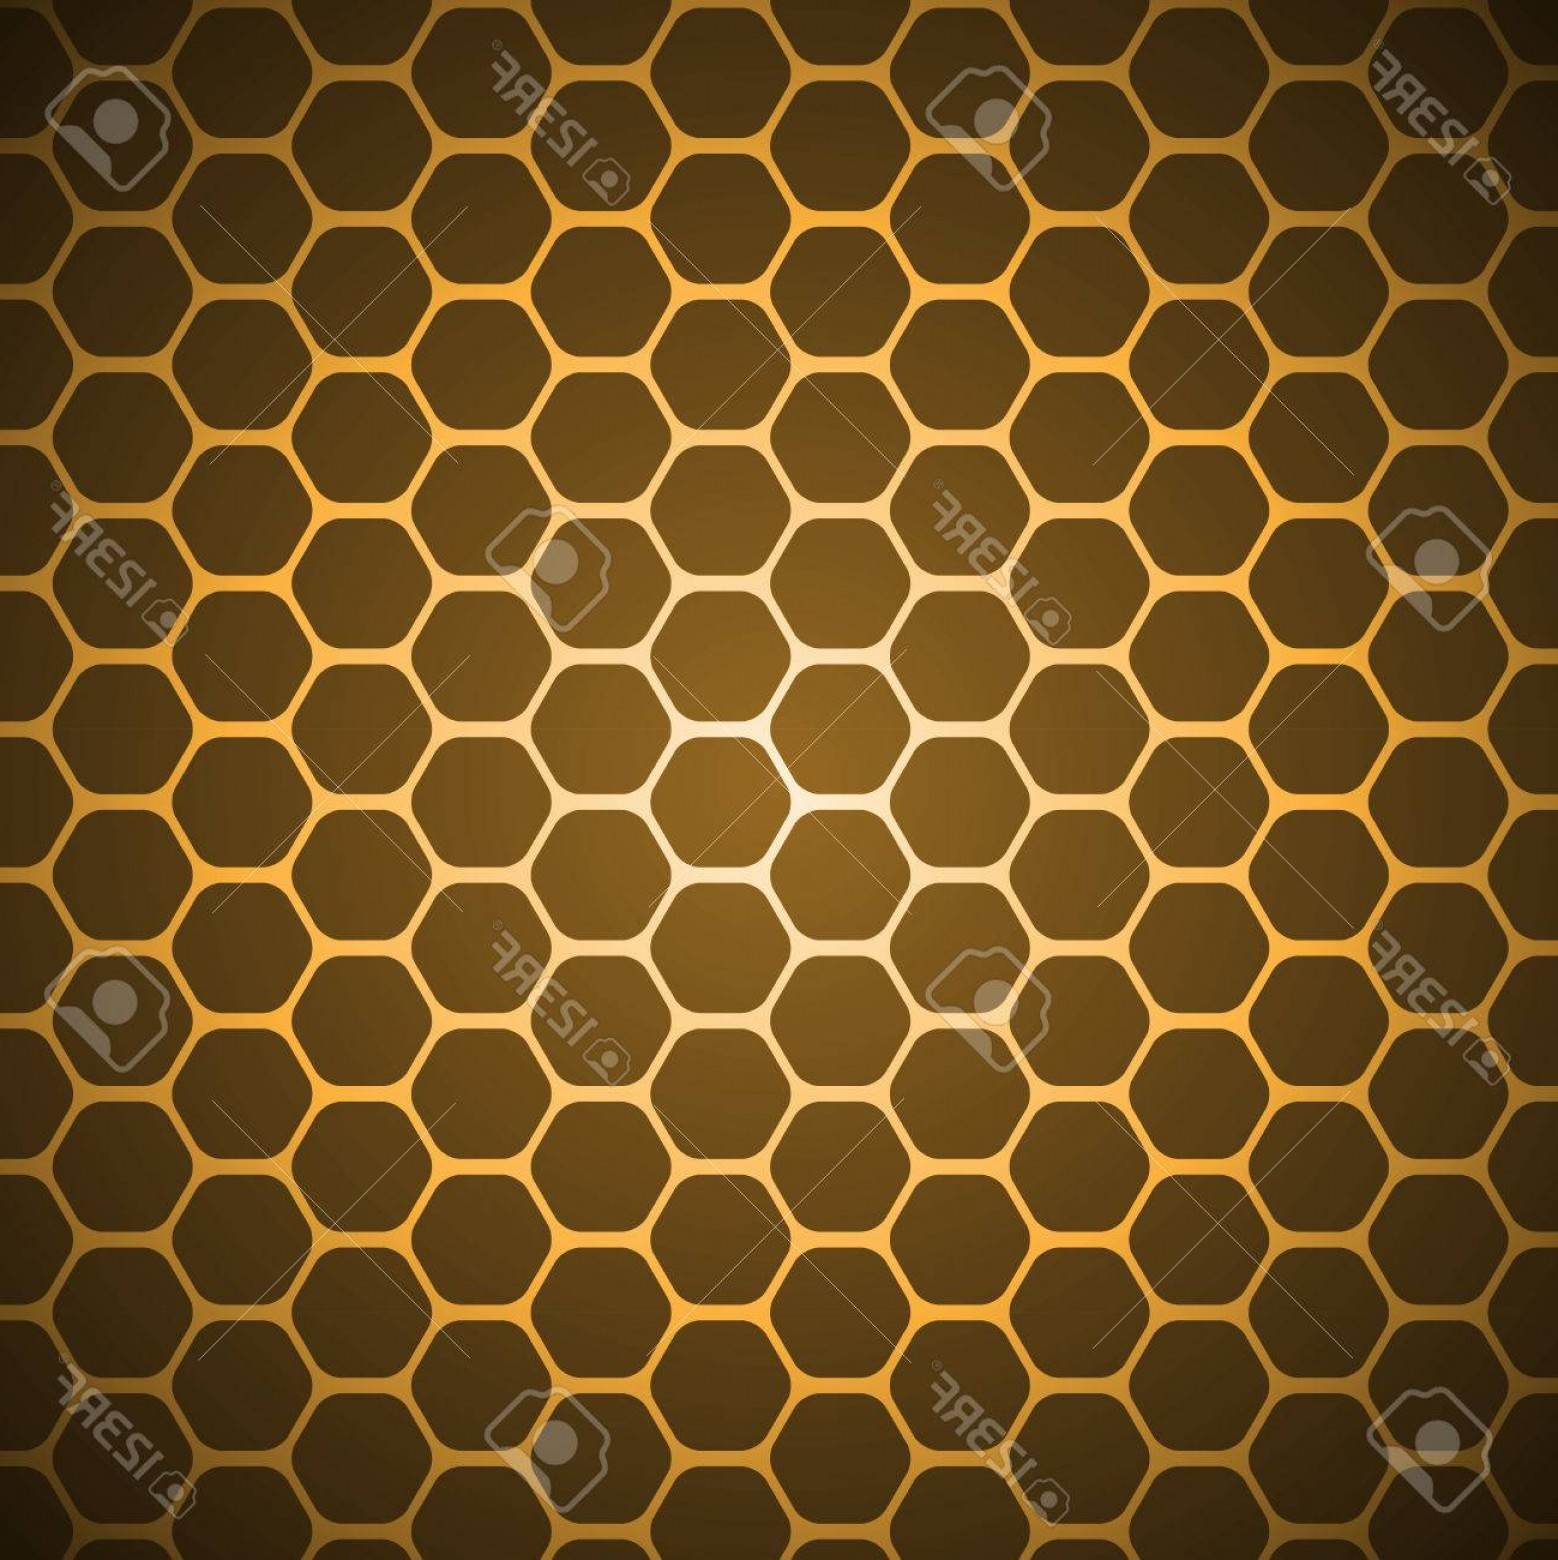 Honeycomb Background Pattern Vector: Photogold Vector Abstract Hexagon Honeycomb Background Pattern